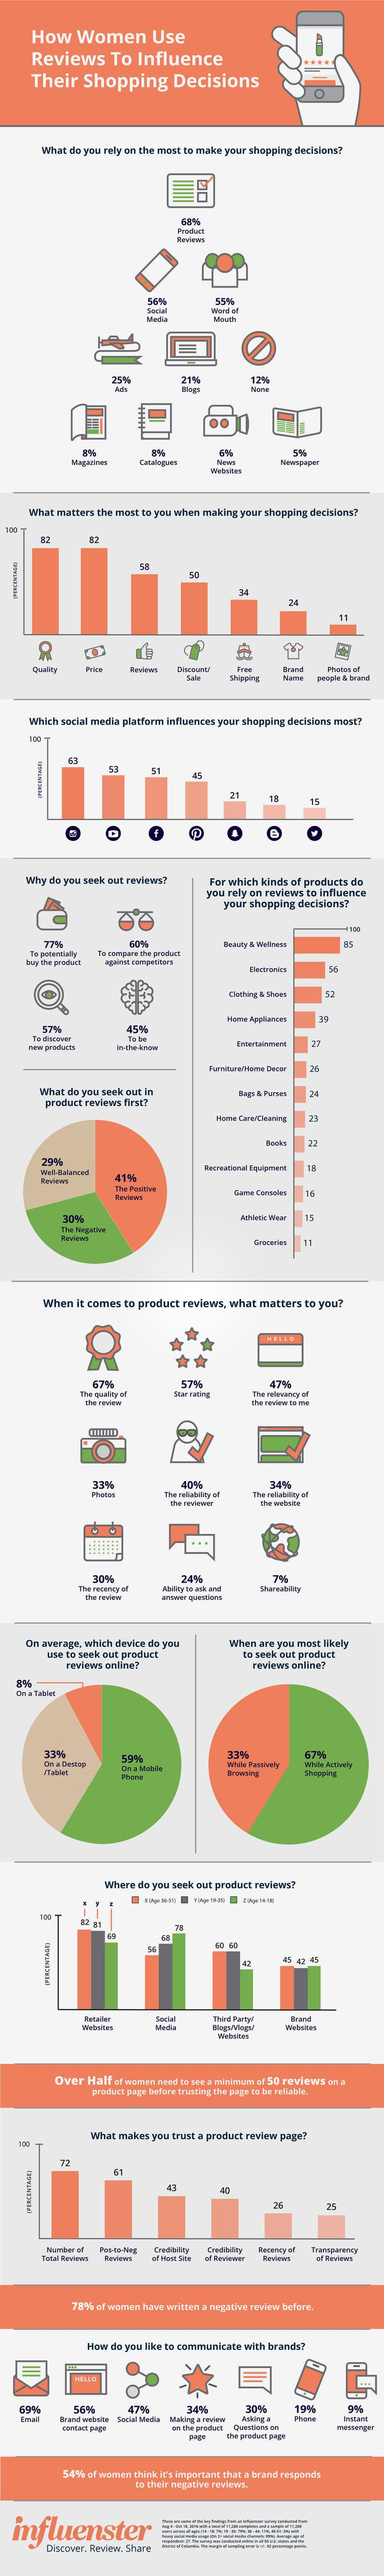 How Reviews Influence Women's Shopping Decisions (Infographic)